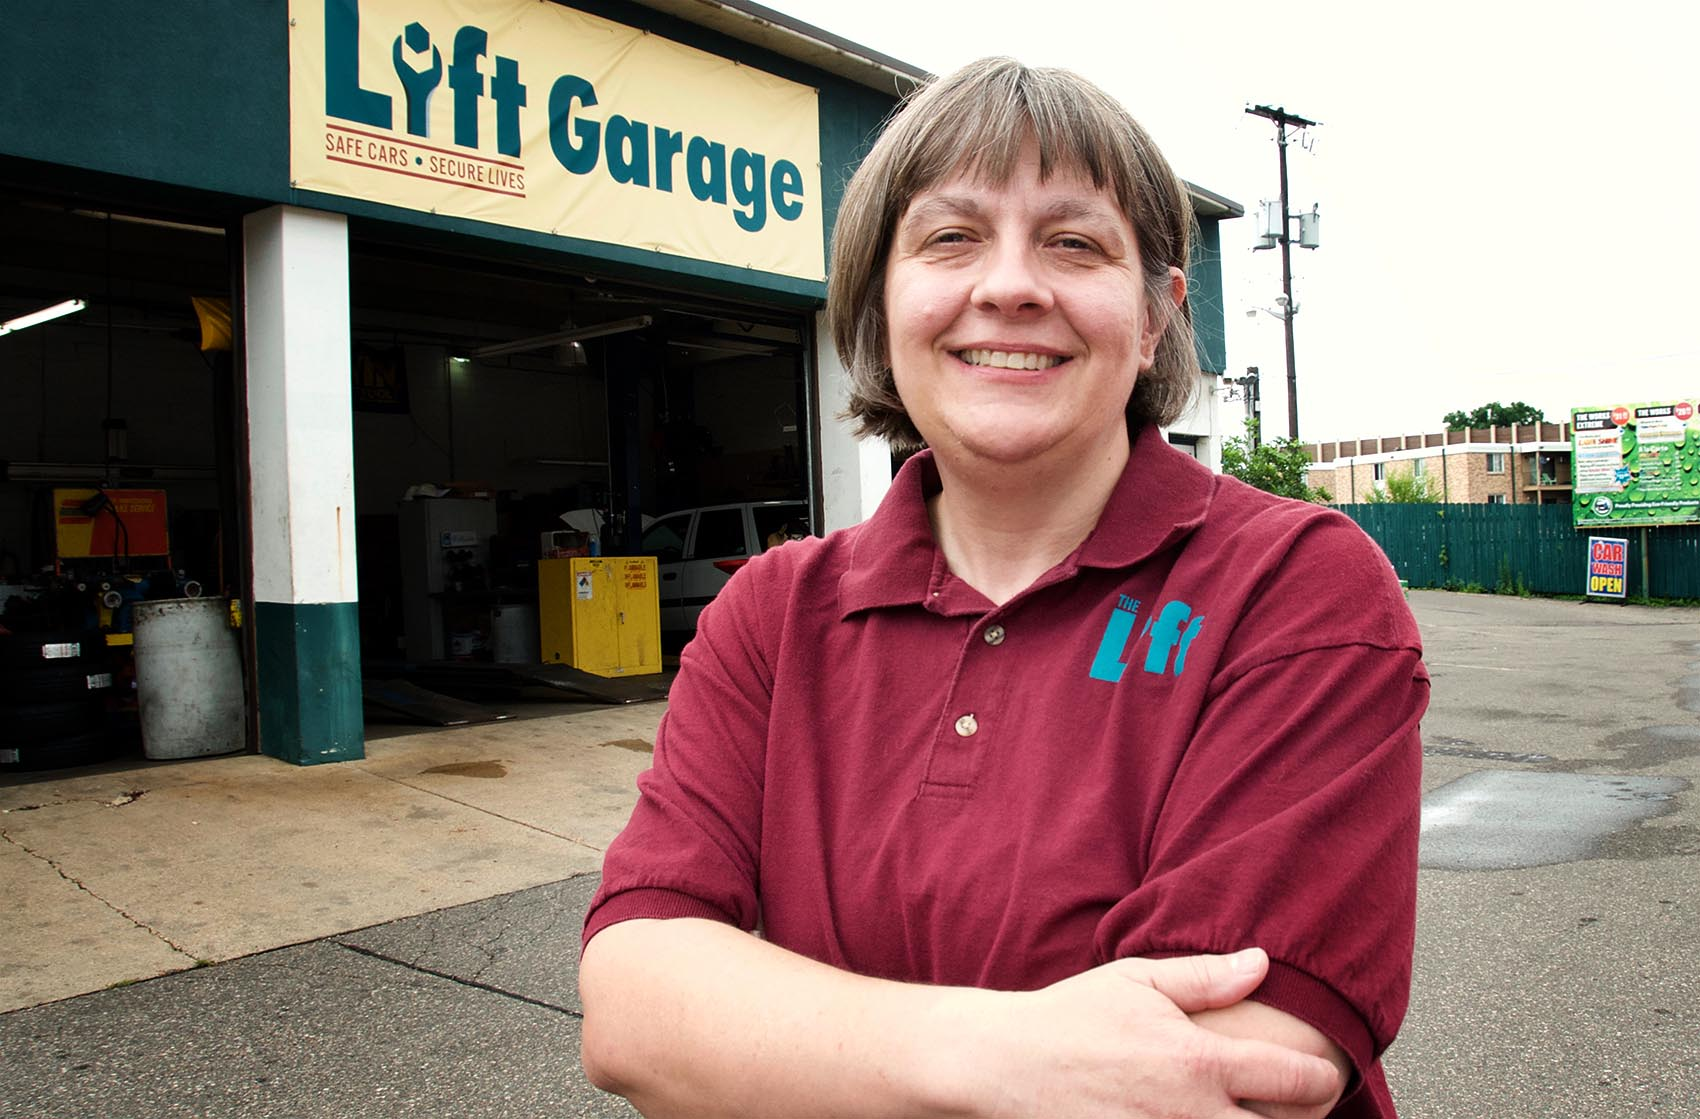 Cathy Heying outside her auto body shop, The Lift. (Courtesy Peter Molenda)